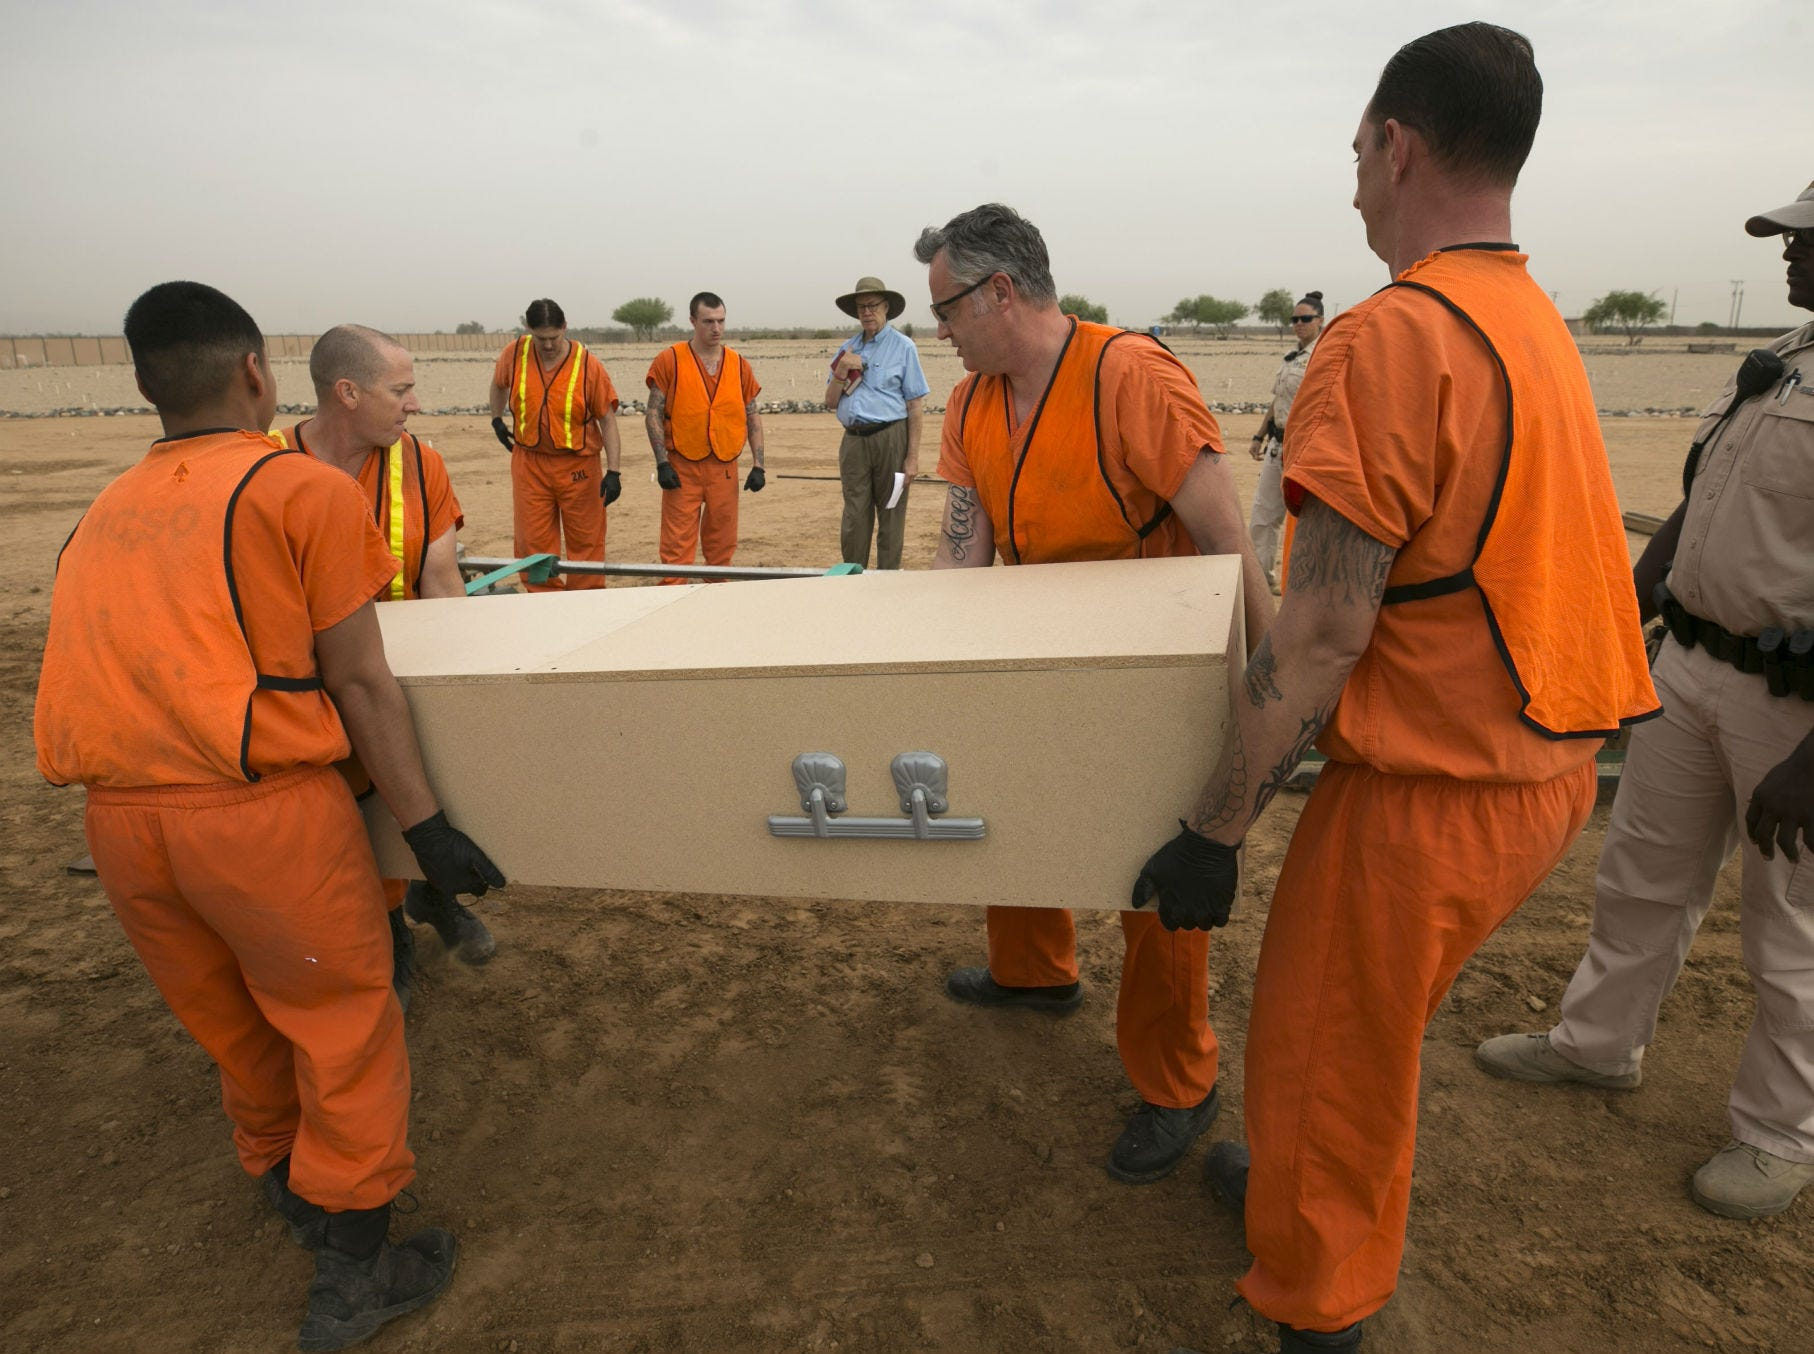 Maricopa County jail inmates assist as Chaplain Thomas Chapman, (background) the Maricopa County coordinator for indigent burials, oversees the burial while a Maricopa County corrections officer keeps a watchful eye at the White Tanks Cemetery in Litchfield Park on Aug. 9, 2018.